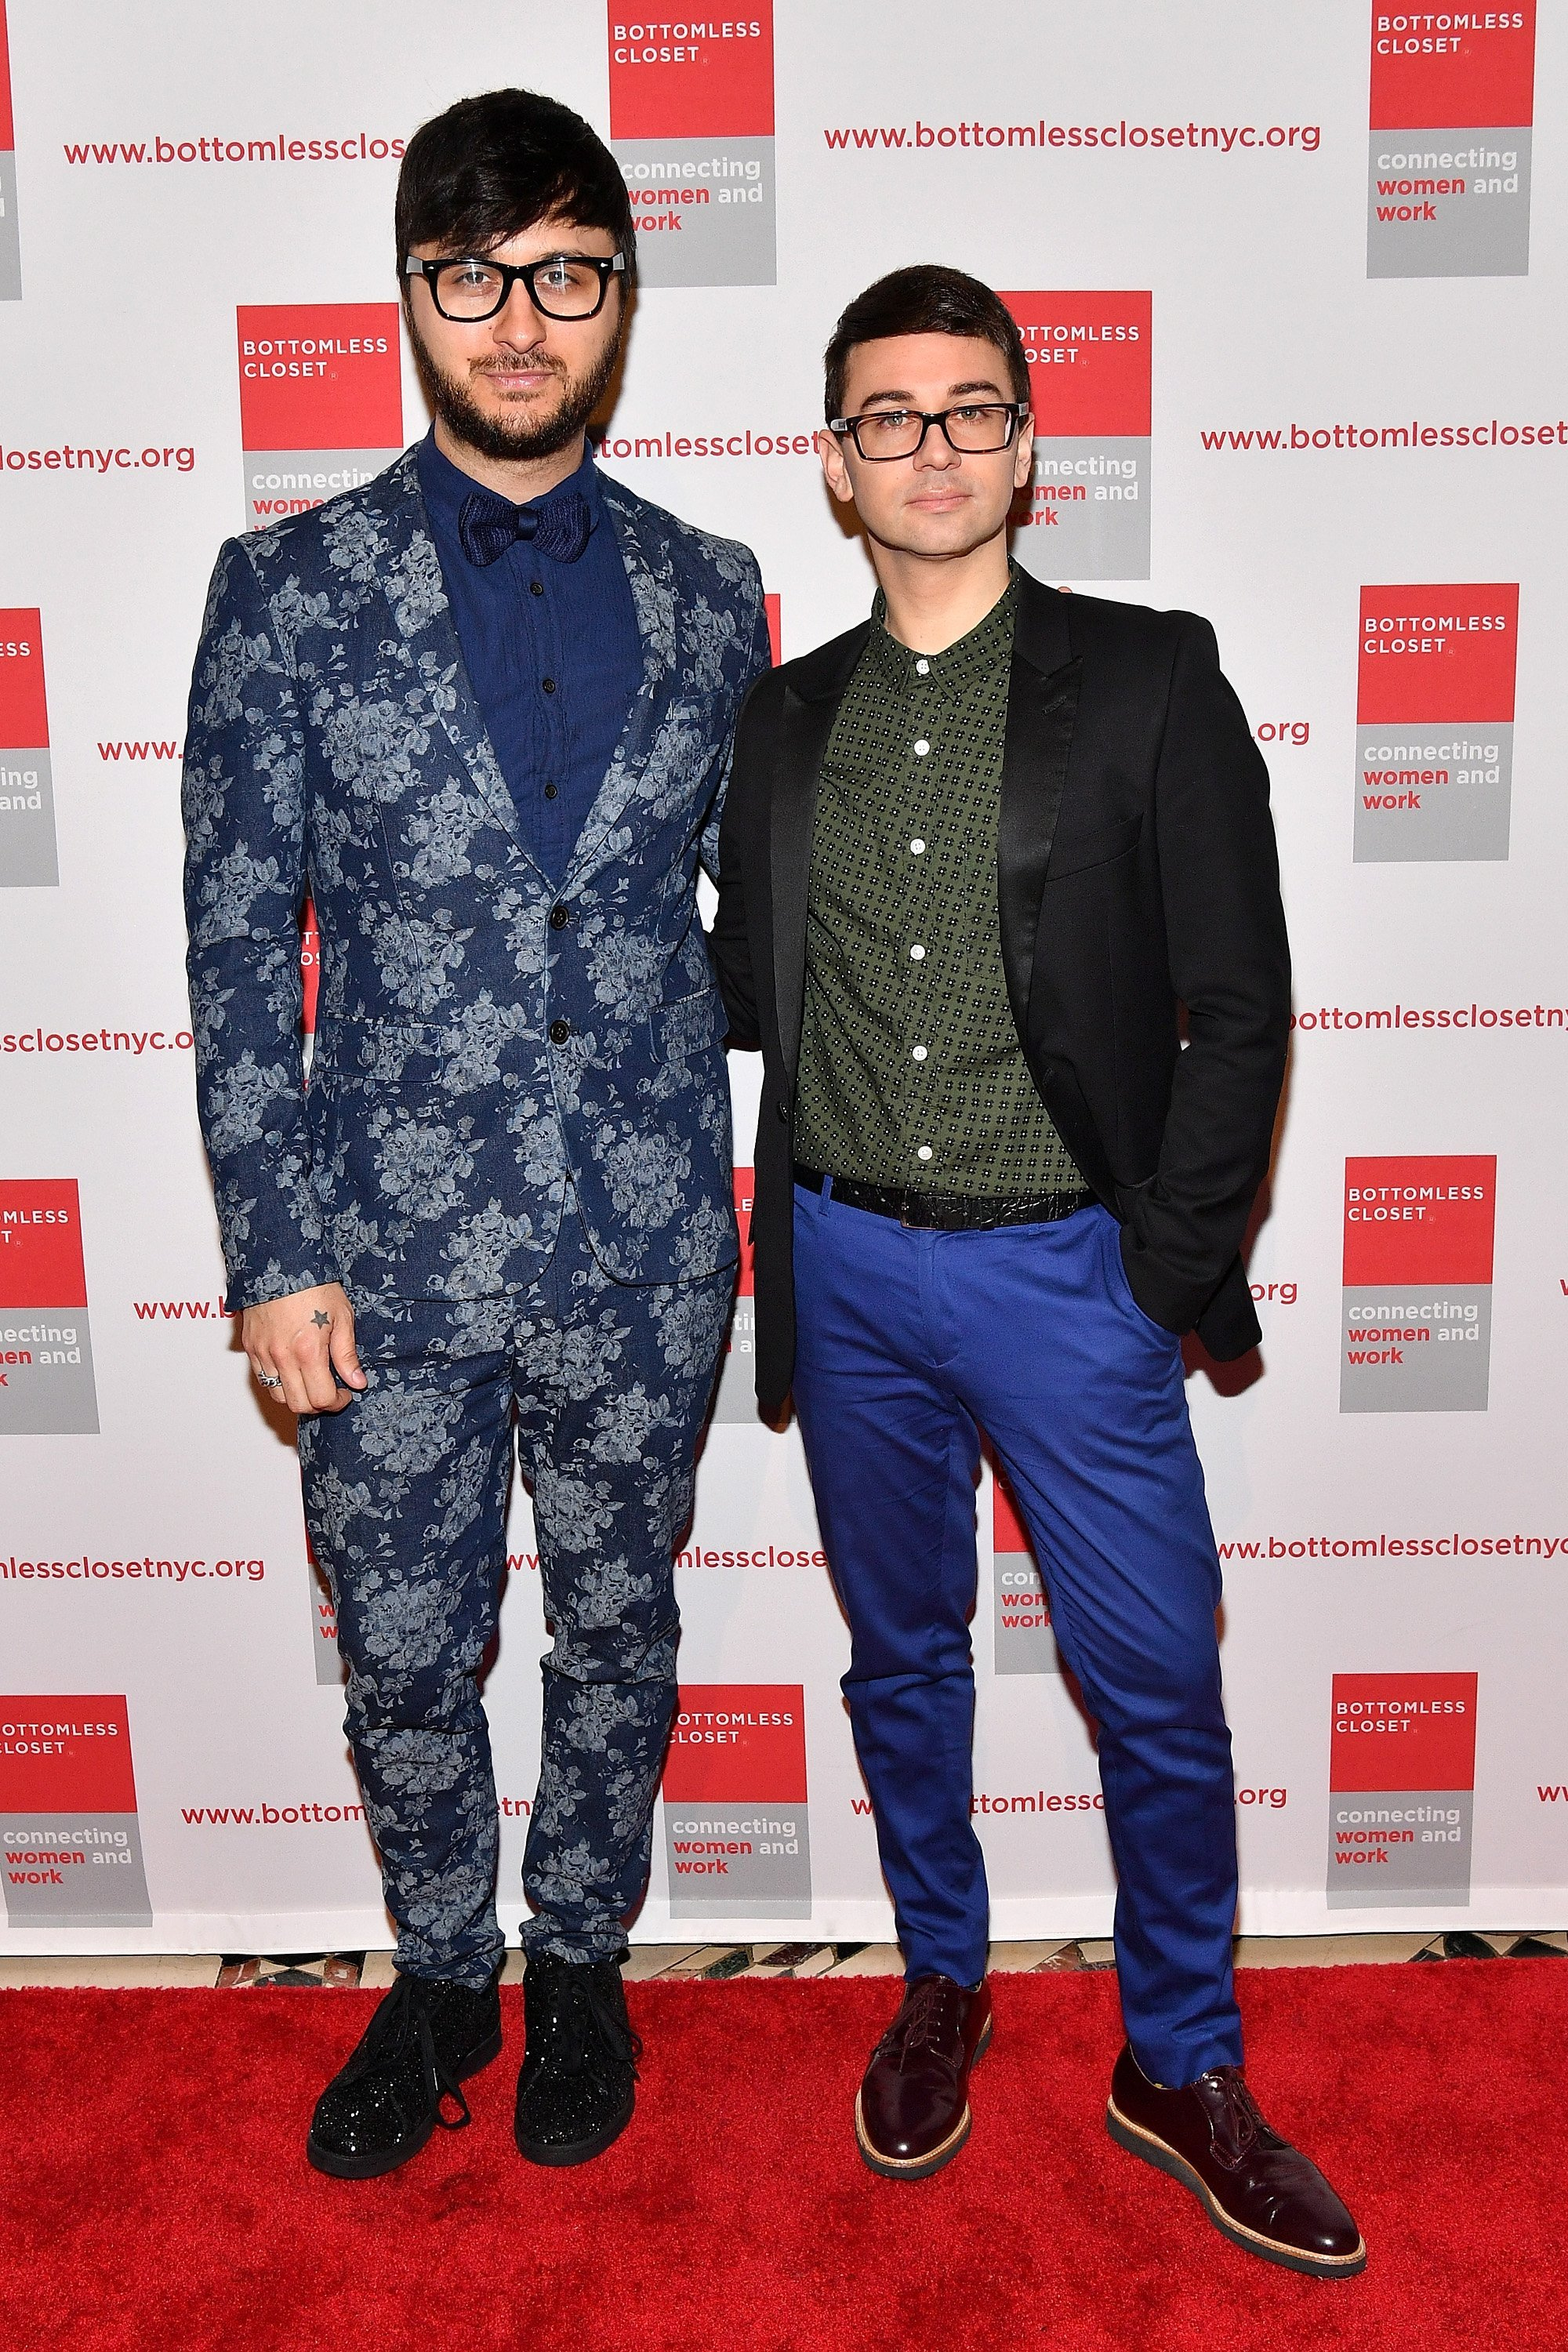 Brad Walsh and Christian Siriano attend the Bottomless Closet's 19th Annual Spring Luncheon on May 16, 2018, in New York City. | Source: Getty Images.